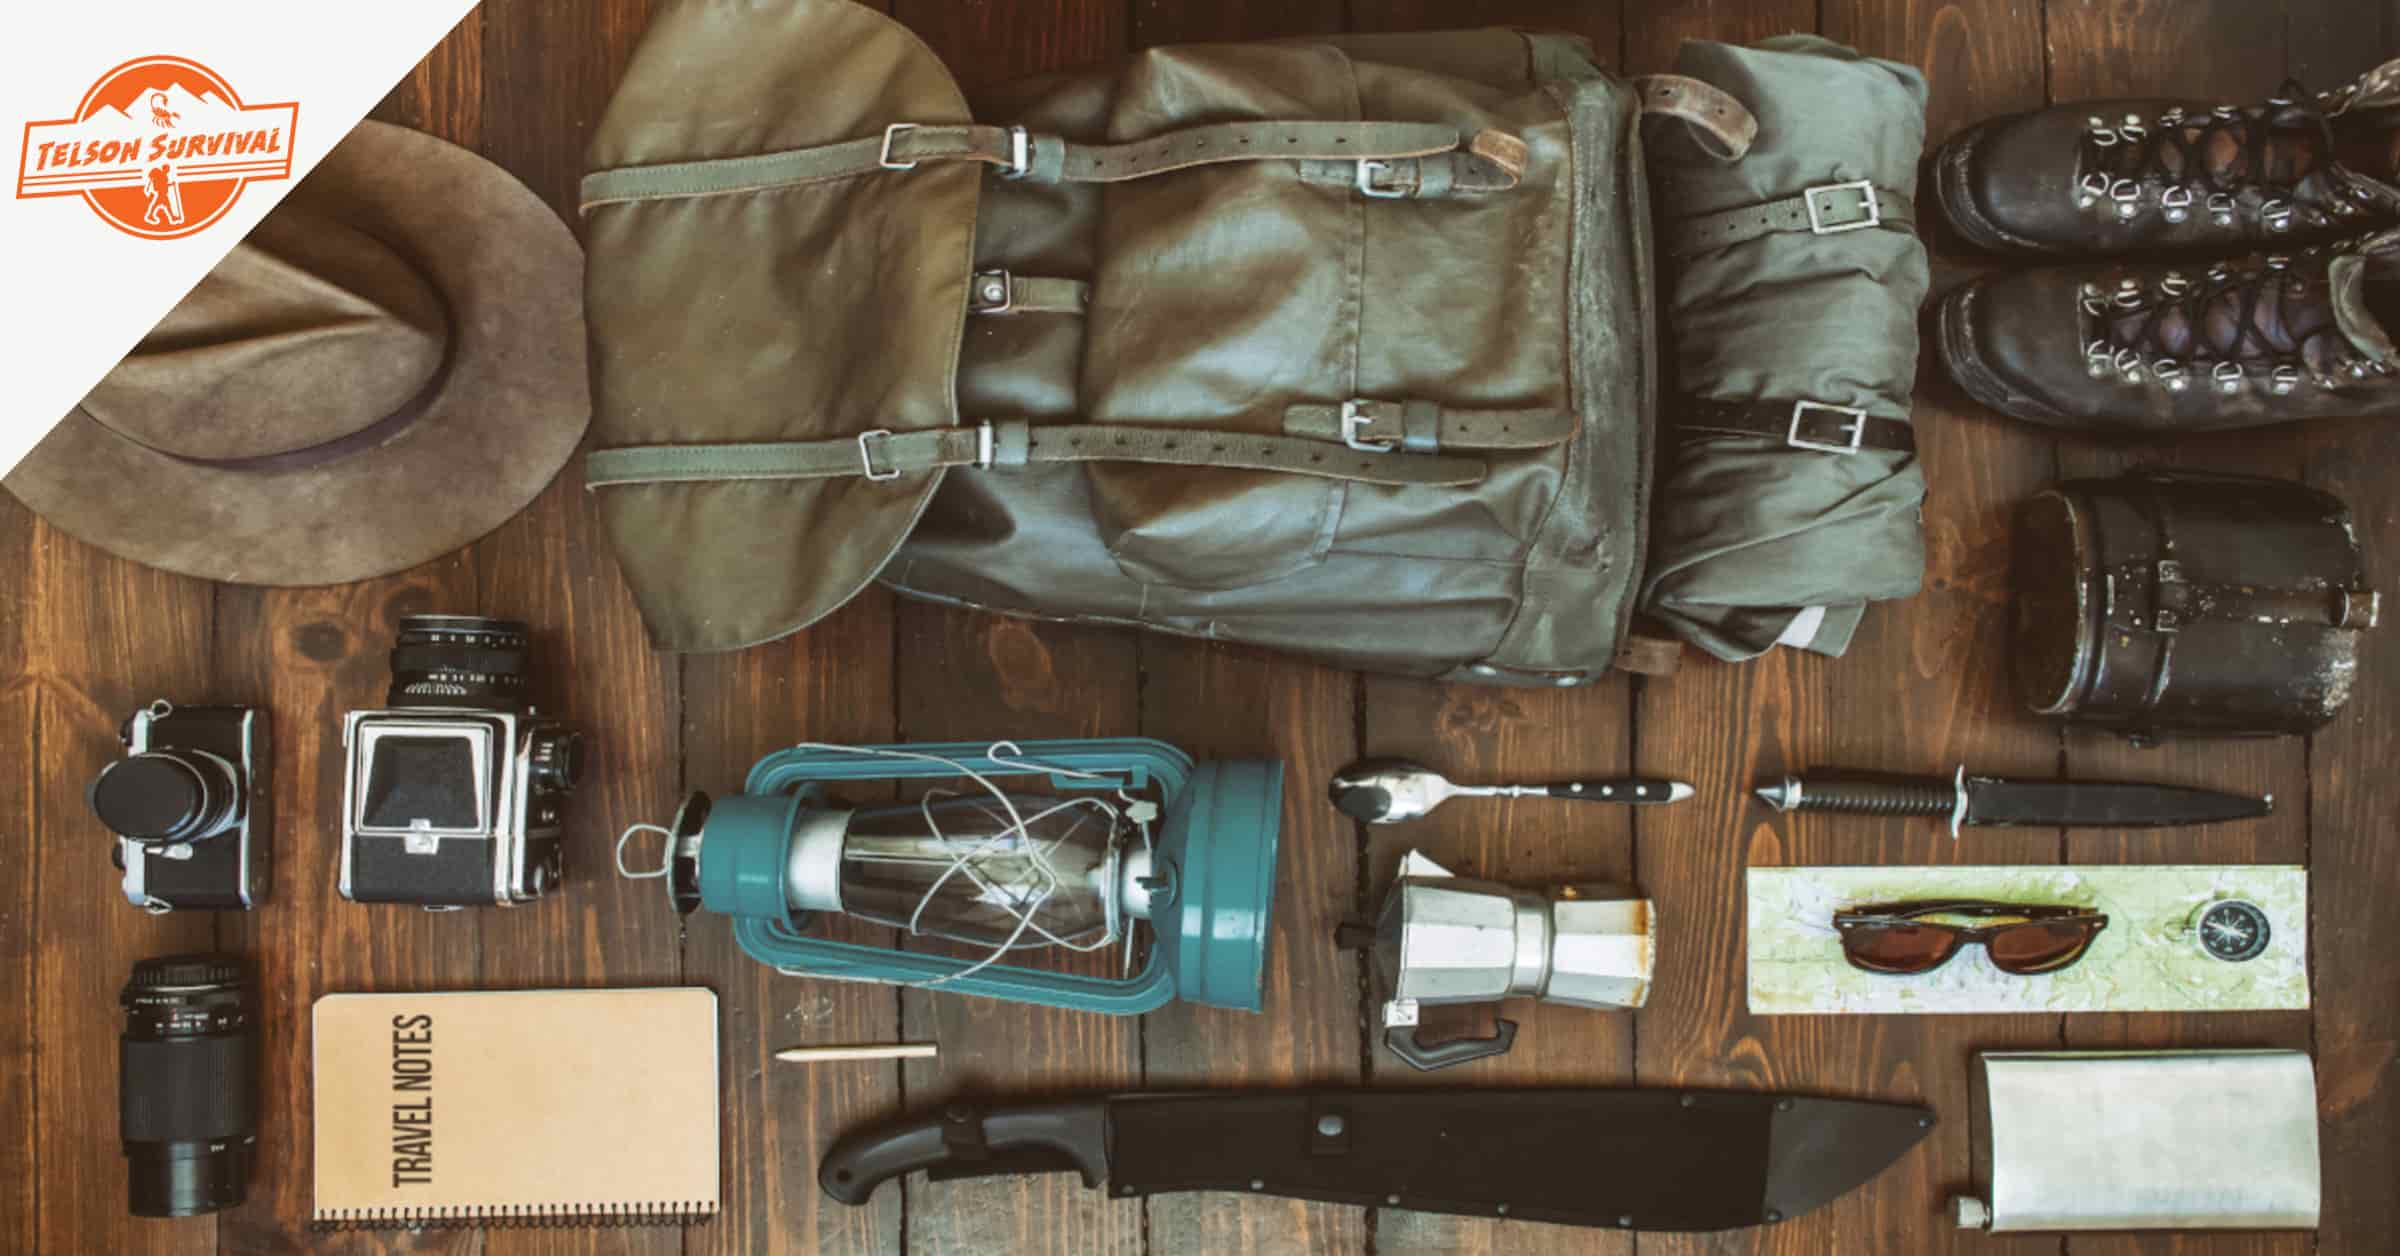 Survival gear on a table forming a wilderness survival kit